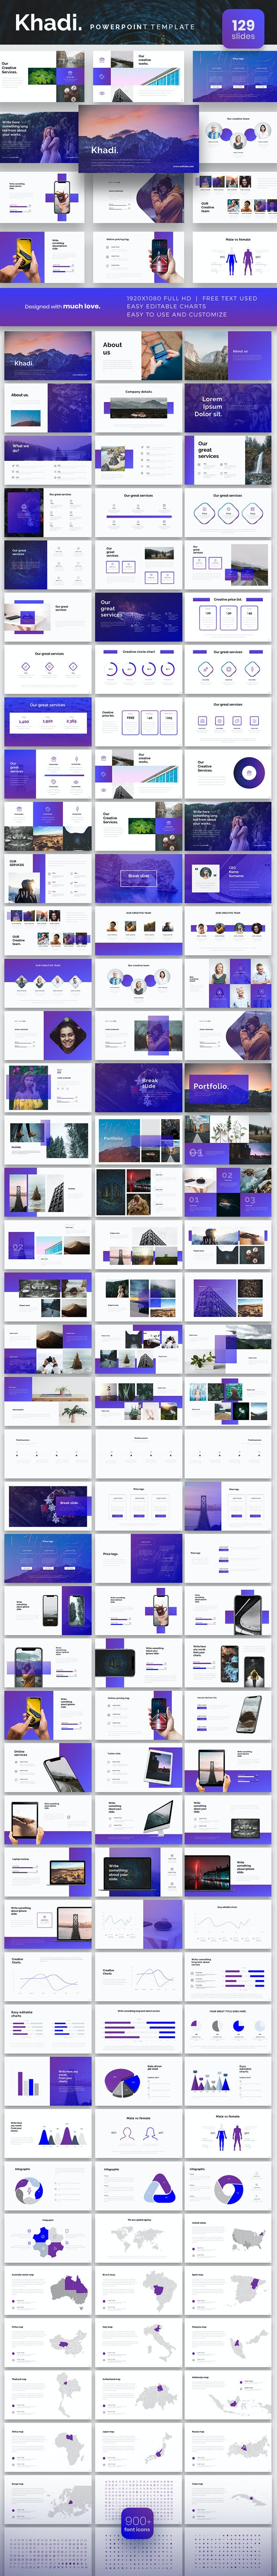 Khadi Powerpoint Presentation Template - PowerPoint Templates Presentation Templates